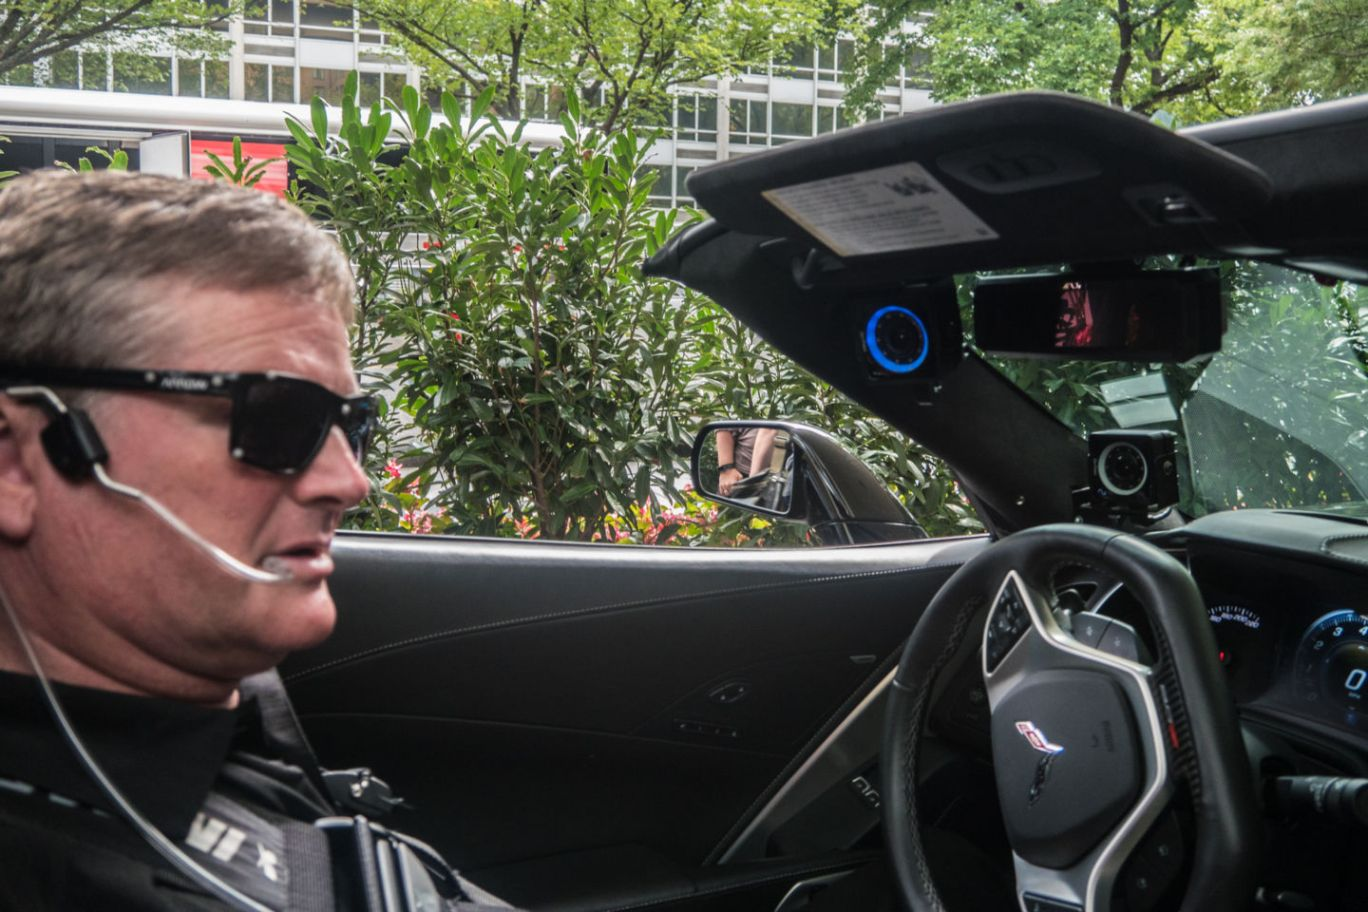 Sam Schmidt sits in driver seat of his convertible corvette wearing specialized sunglasses and a headset that control his vehicle